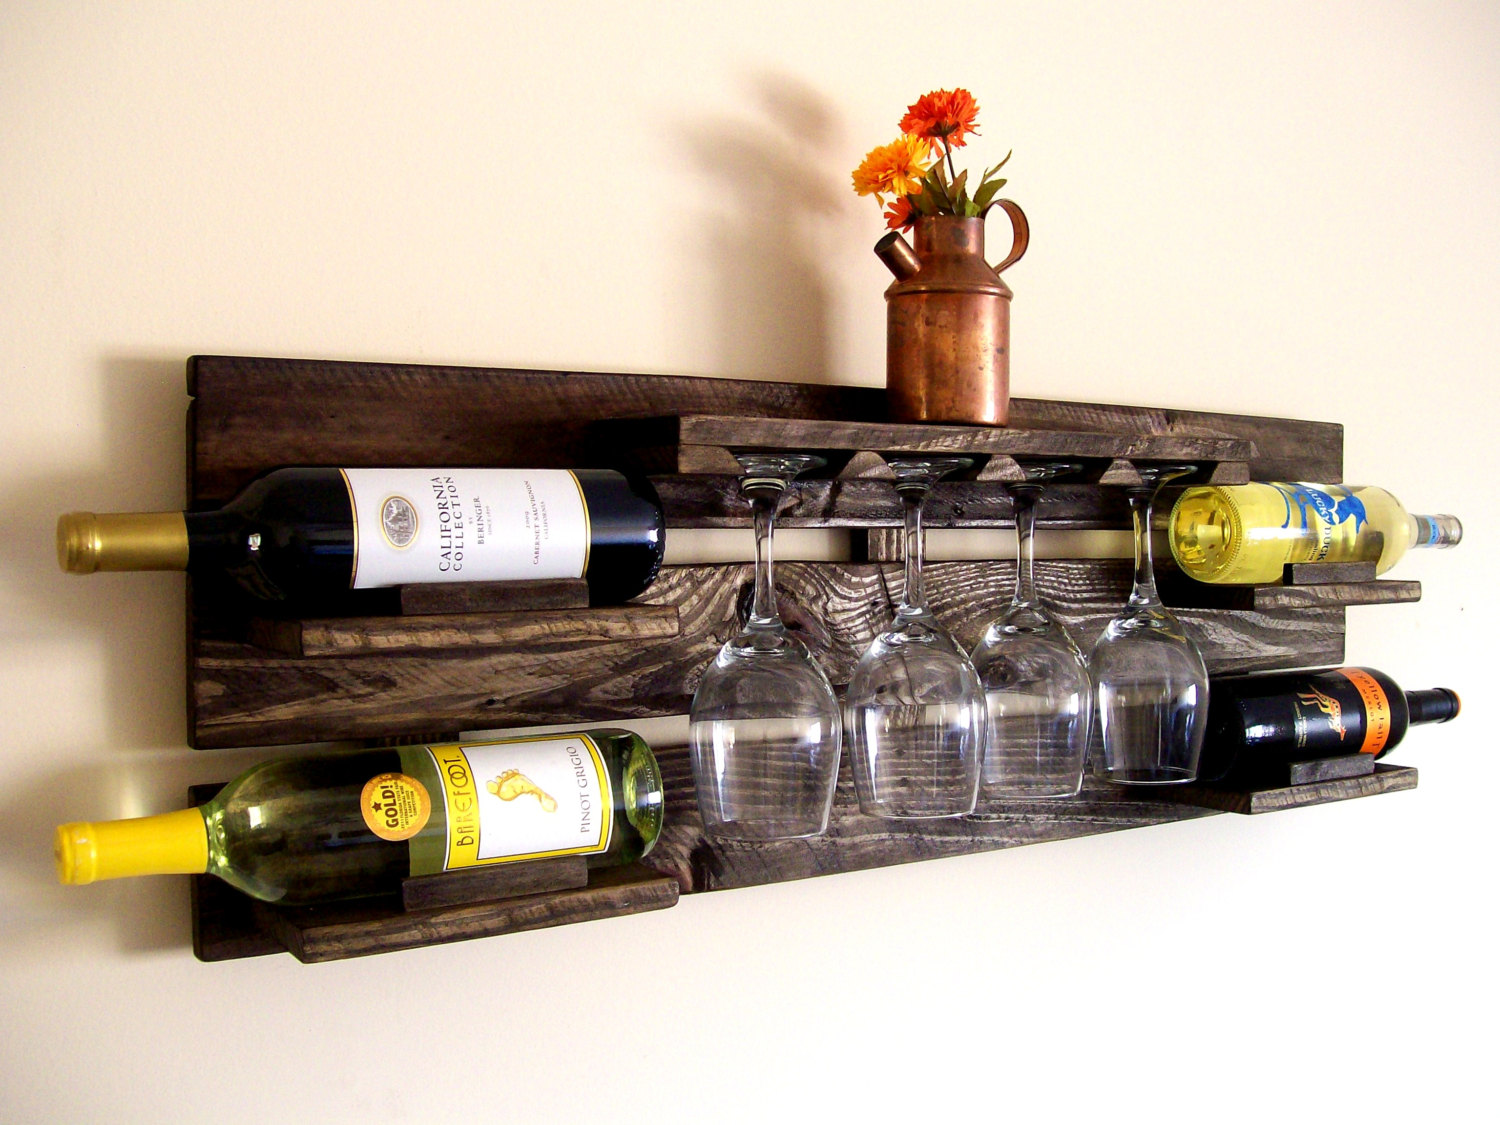 Diy Wine Storage Ideas Clever Ways Of Adding Wine Glass Racks To Your Home S Décor